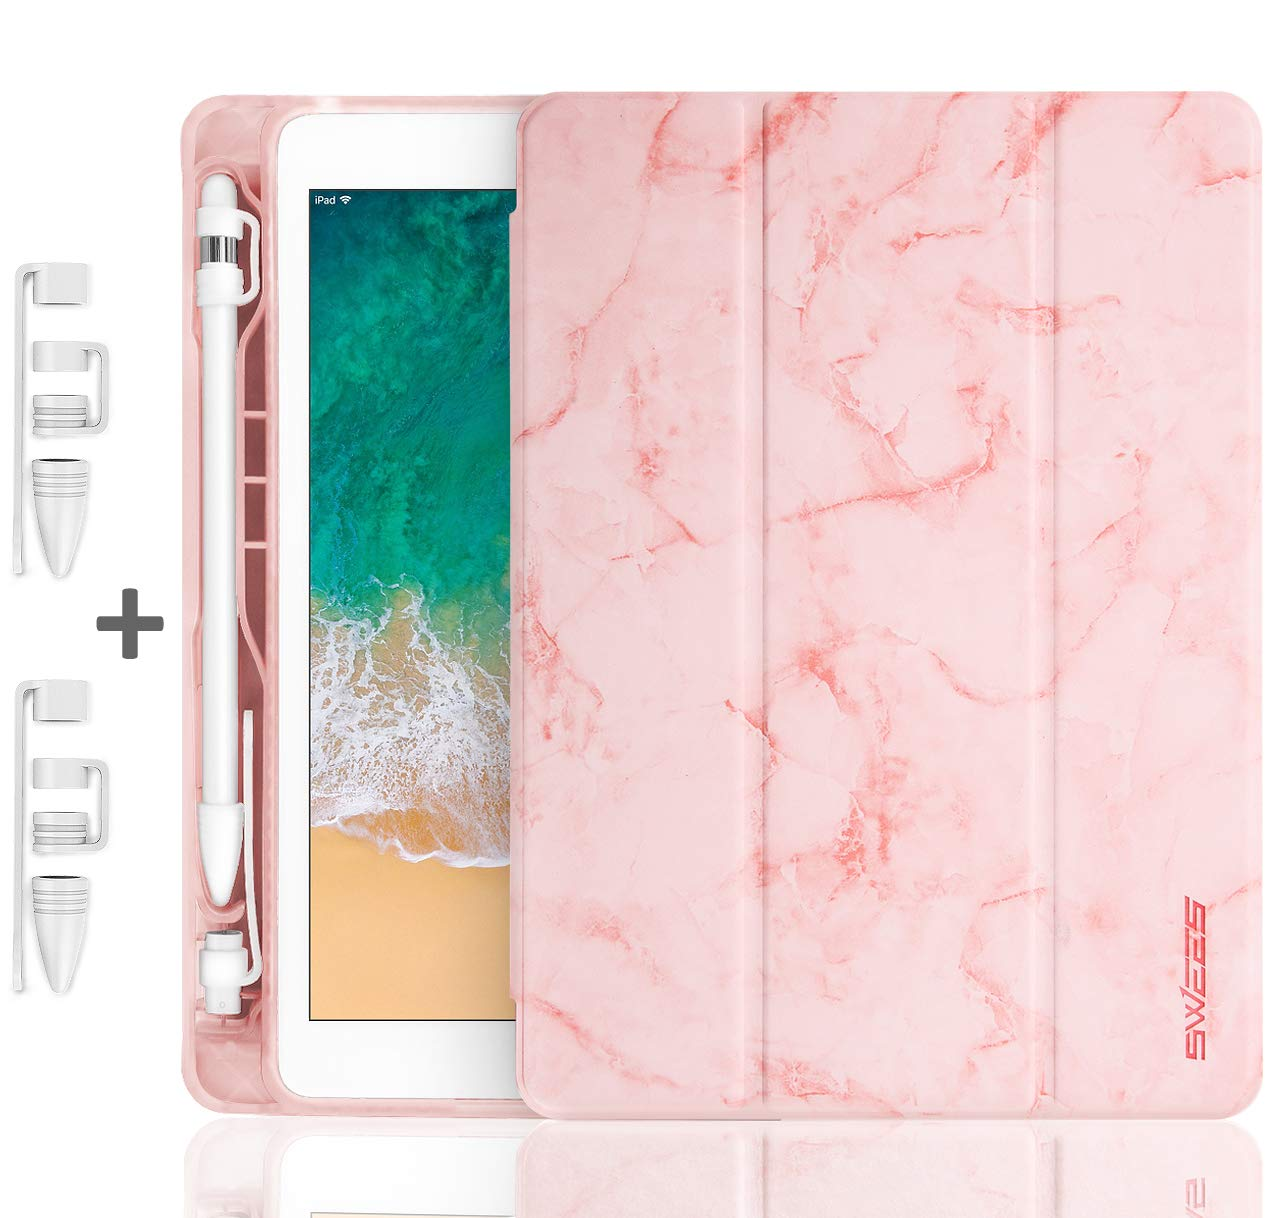 SWEES Compatible with iPad 9.7 2018/2017 Case with Pencil Holder, Shockproof Leather Smart Cover Auto Sleep/Wake with Pencil Cap Holder Compatible for iPad 9.7 inch 6th/5th Generation, Pink Marble